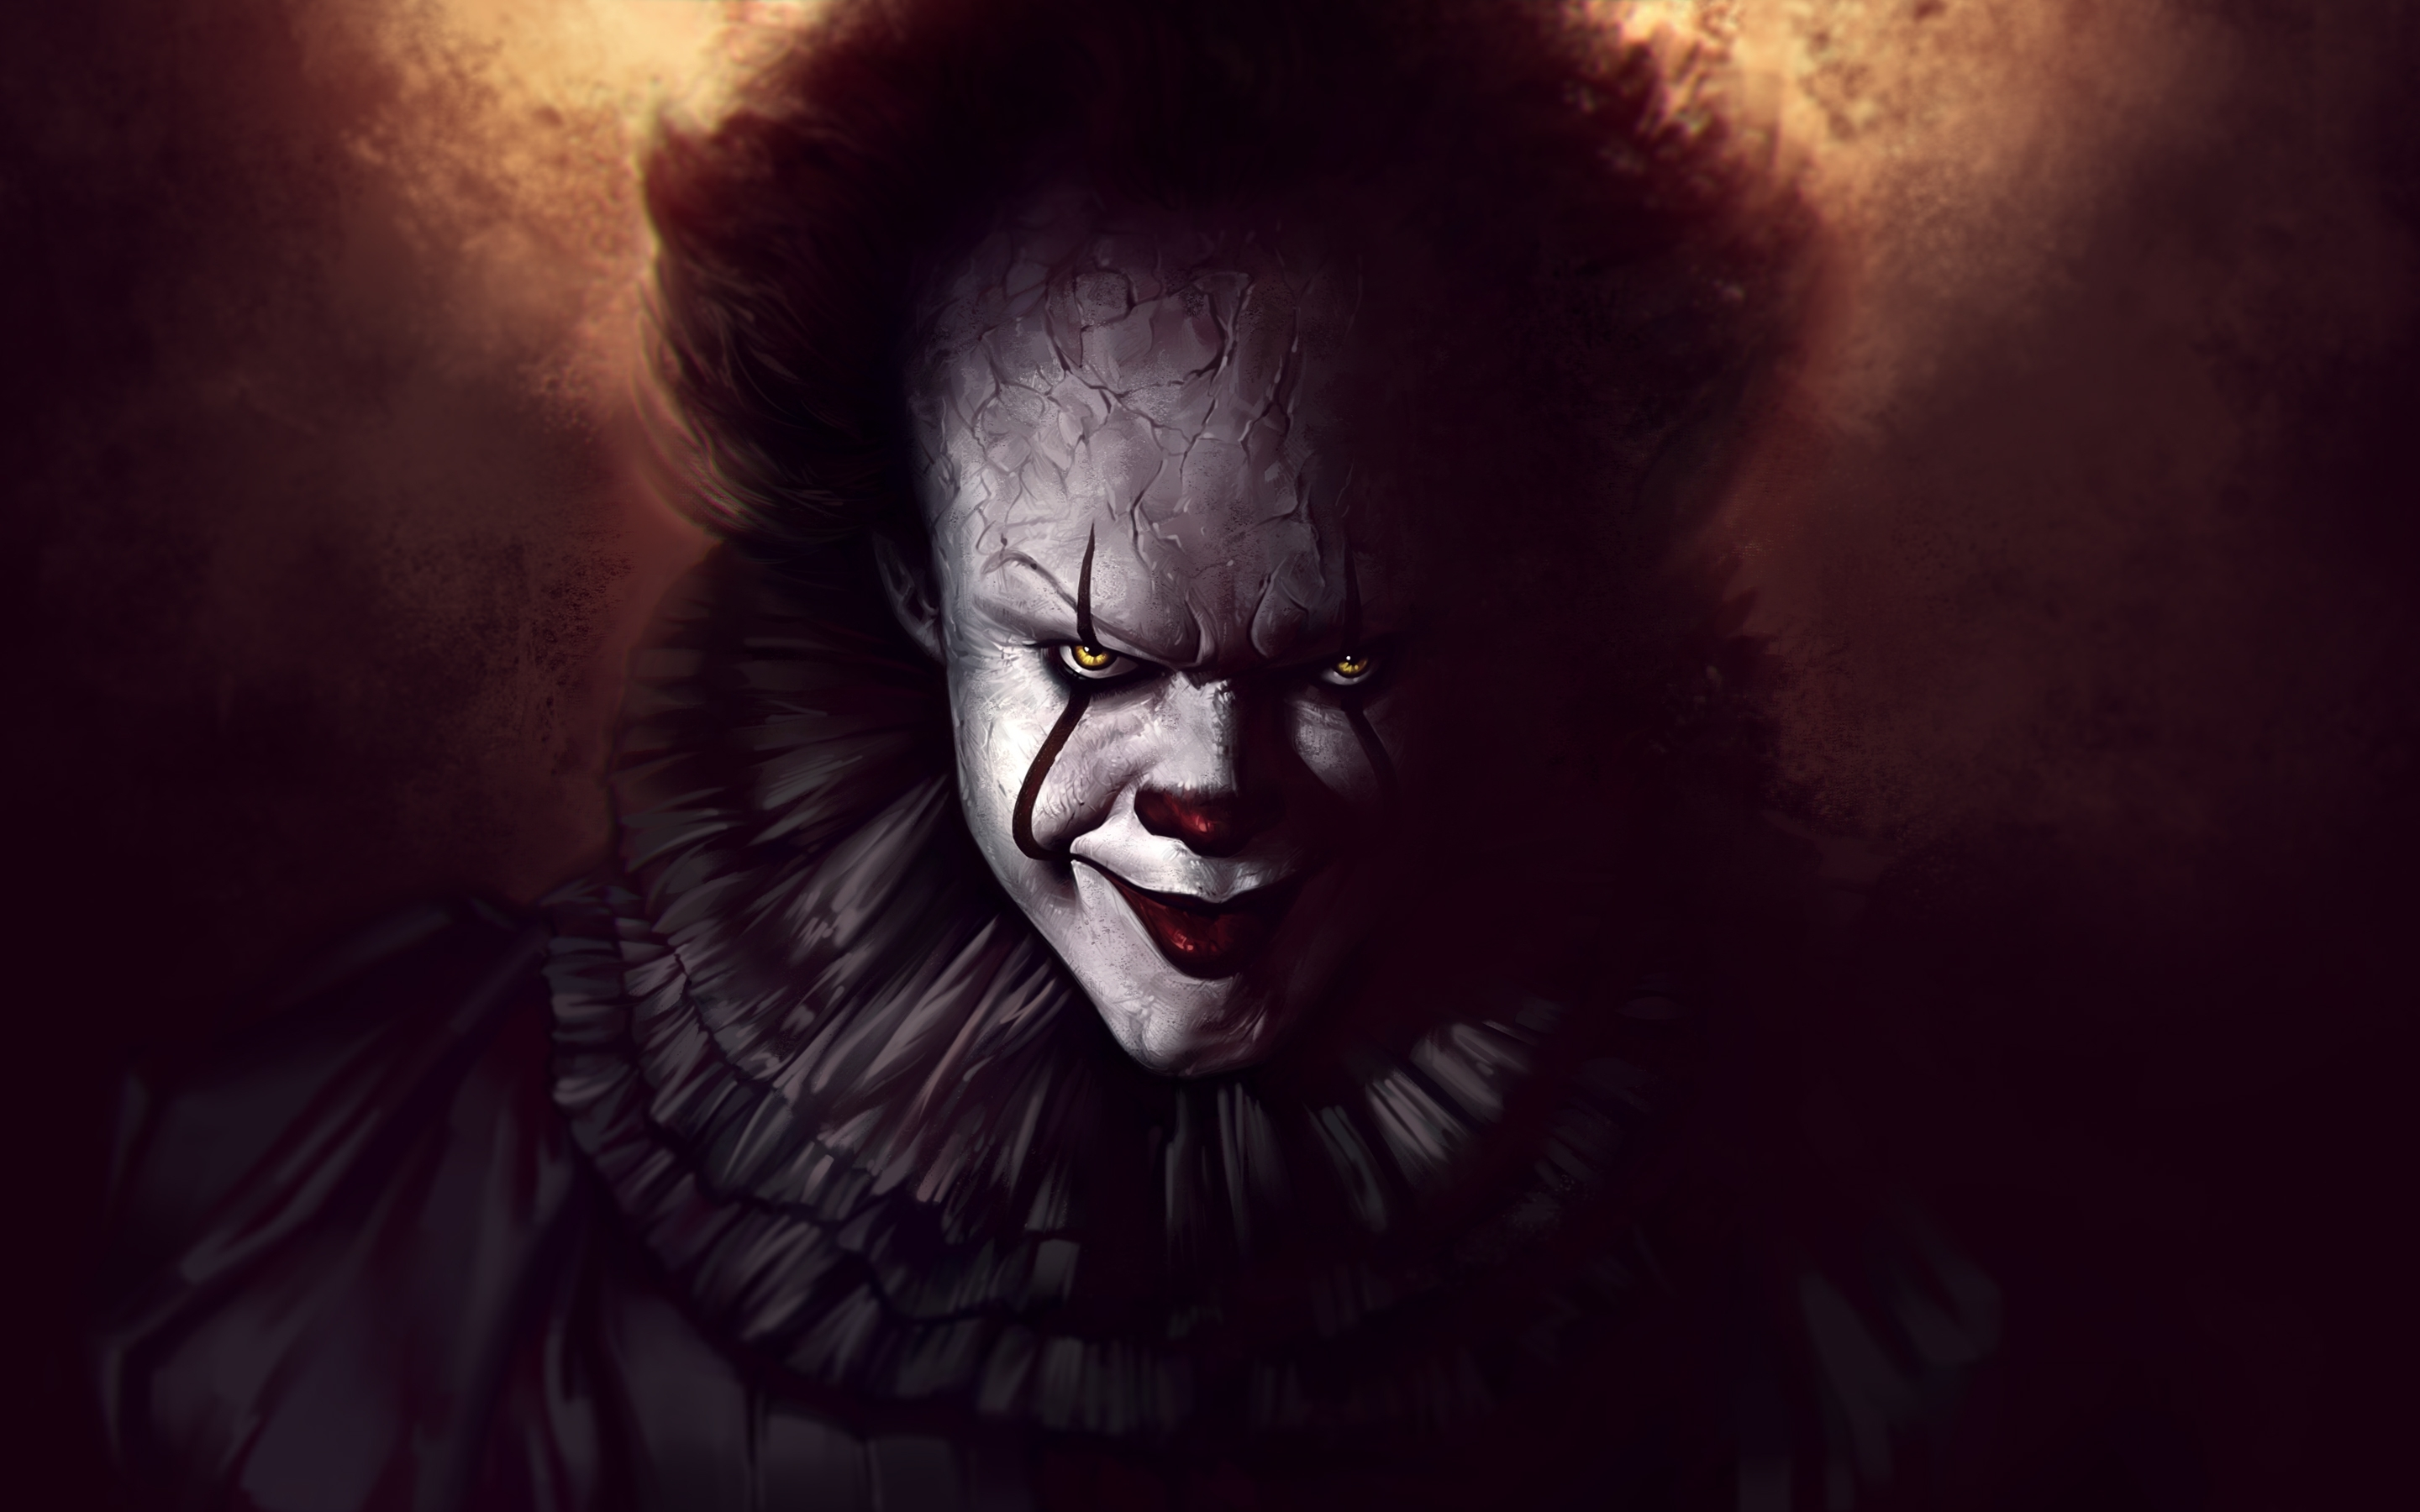 pennywise the dancing clown wallpapers | hd wallpapers | id #22255